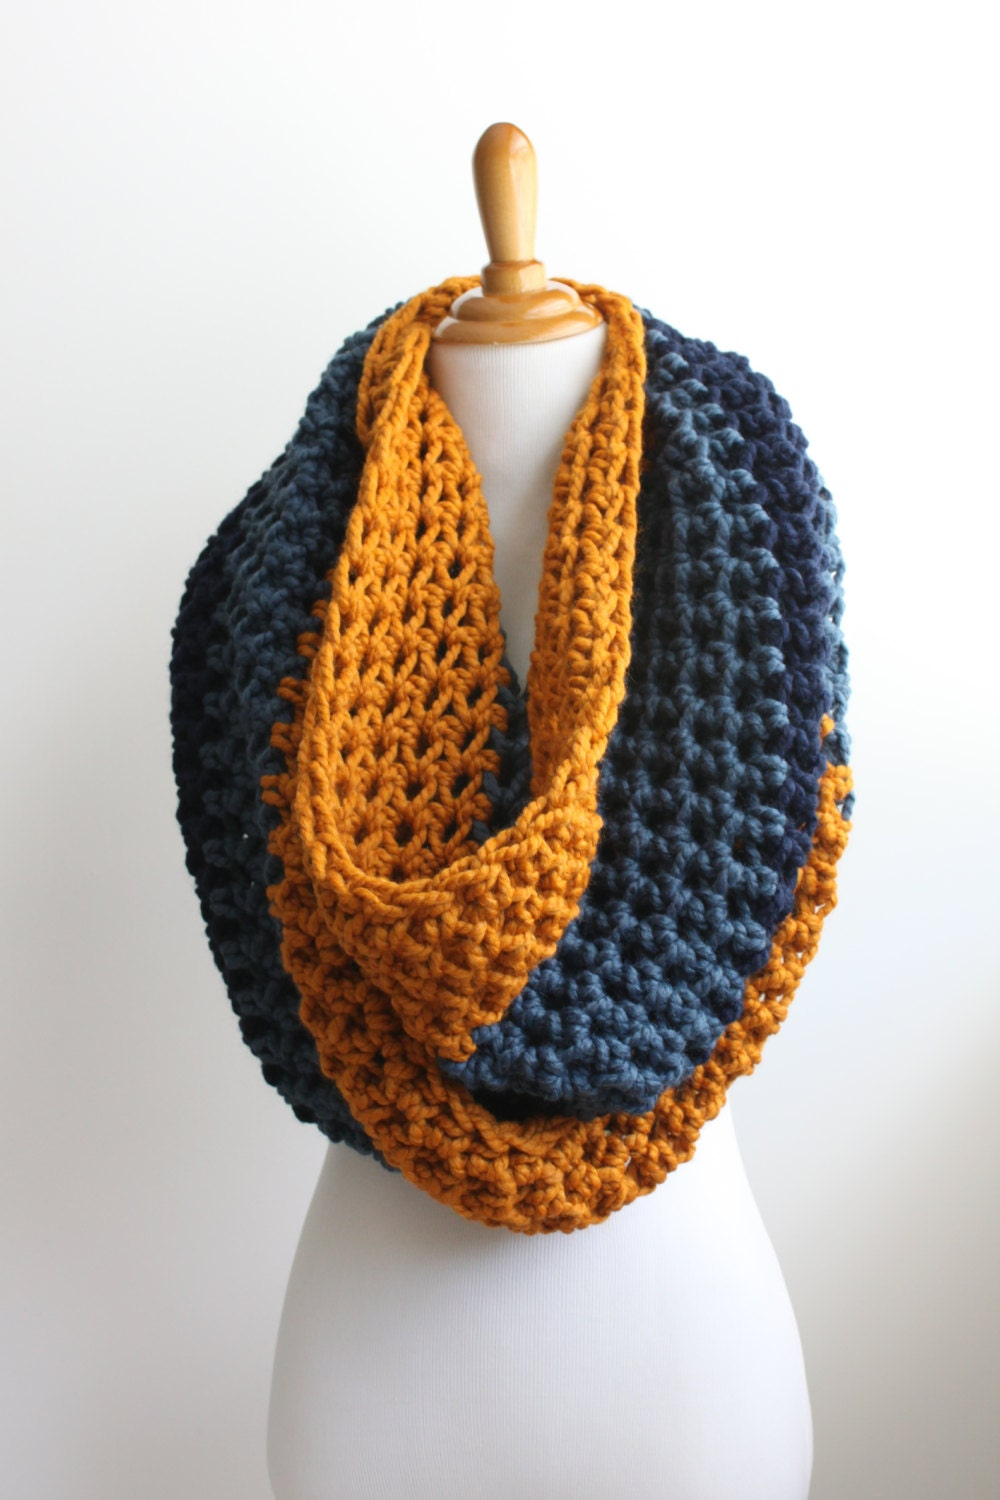 Spectacular Crochet Cowls 10 Free Patterns to Make Tonight!